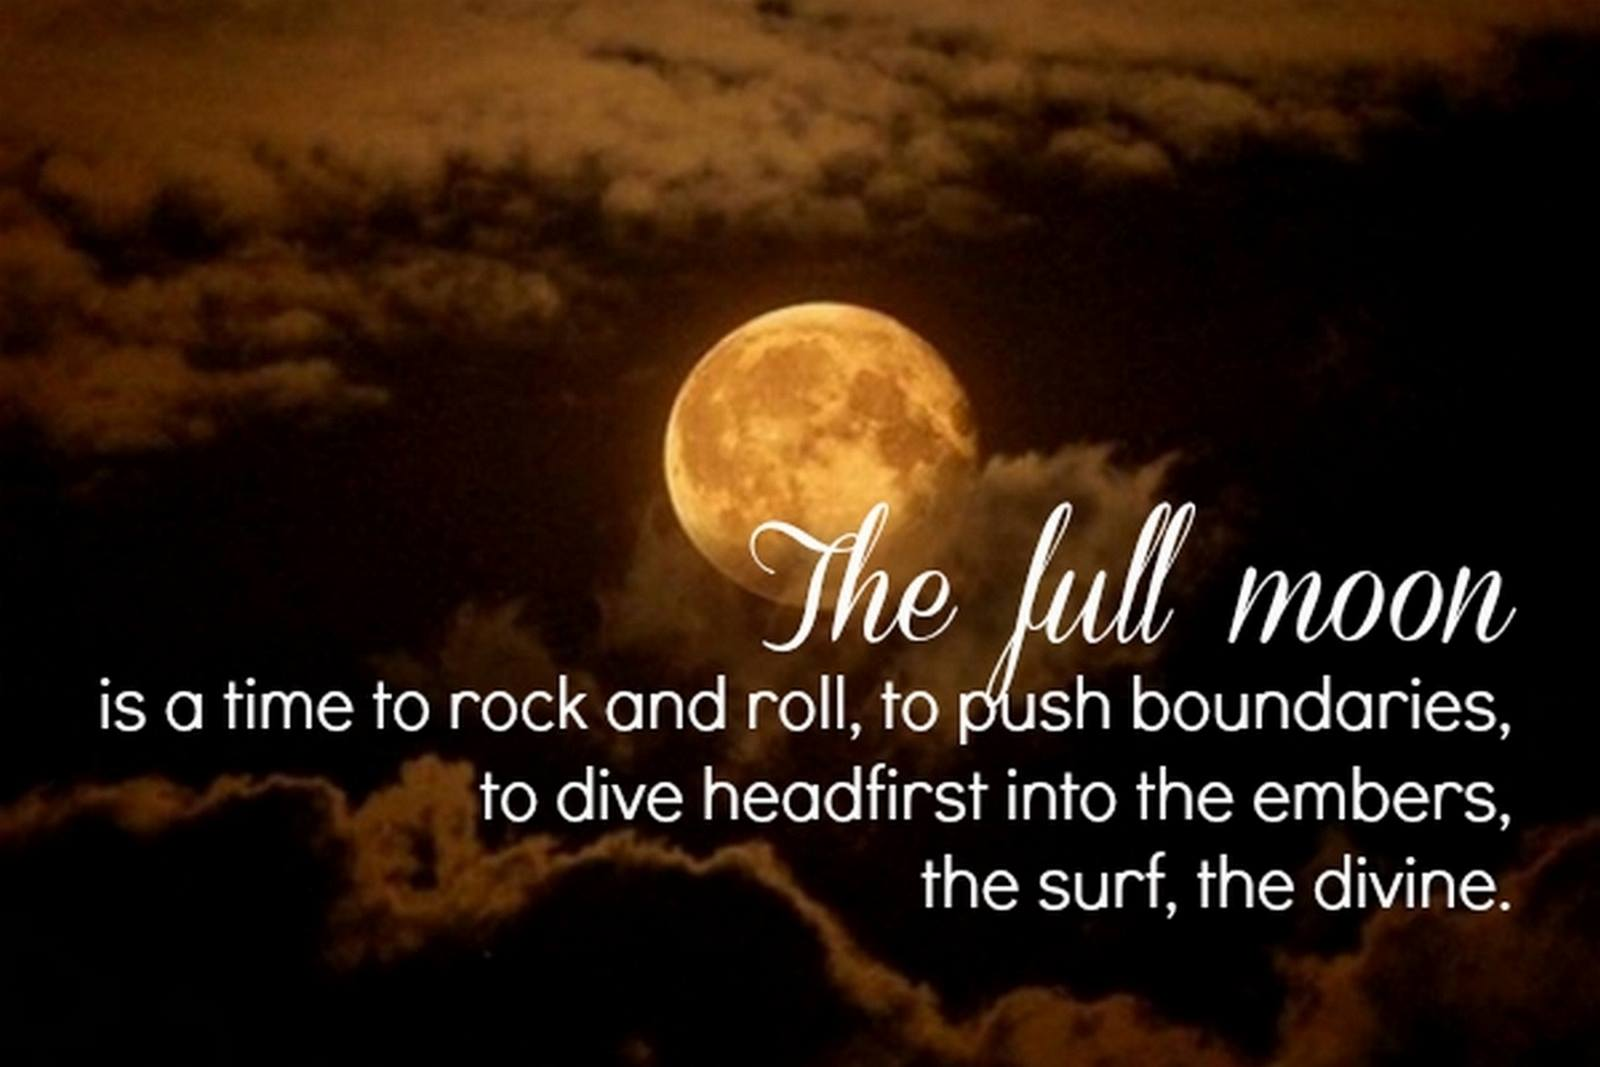 Quotes About Full Moon Fullmoon 1600×1067  Celestialwhimsical  Pinterest  Whimsical